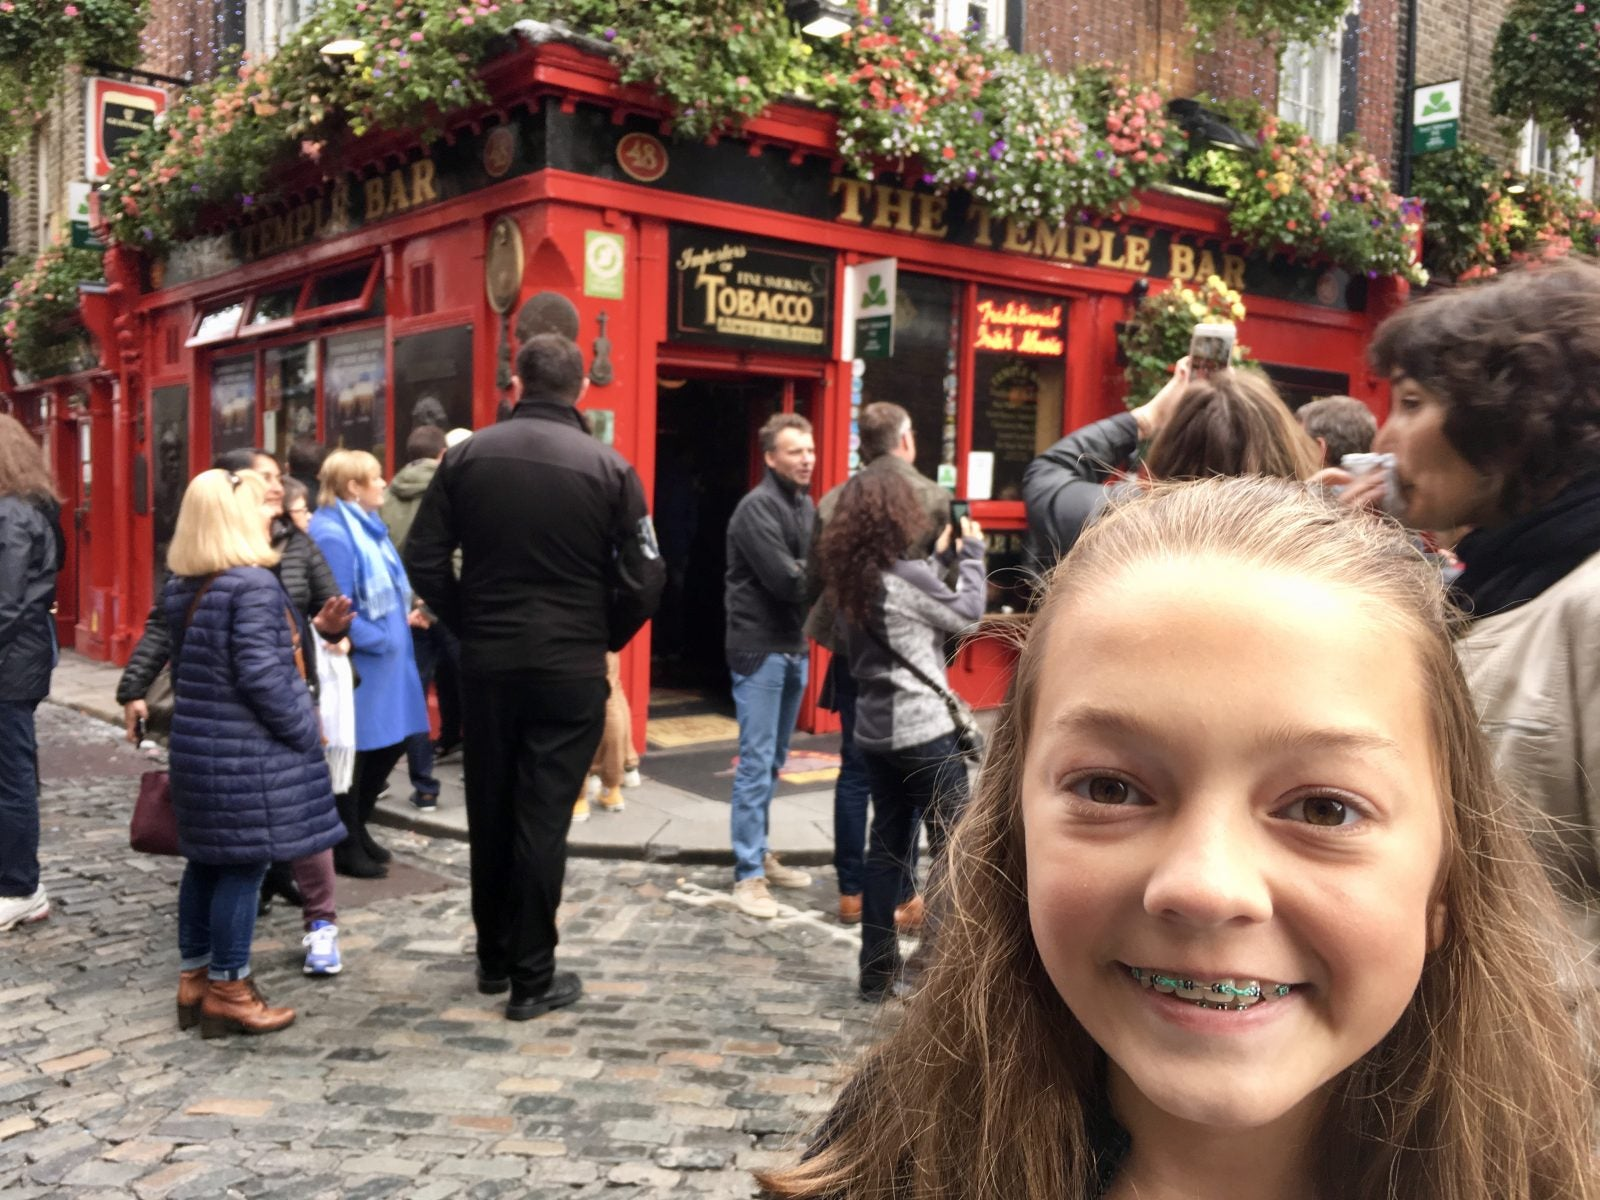 Chase Credit Cards Helped Get Us an Unforgettable Long Weekend Birthday Trip to Ireland Worth $3,400+